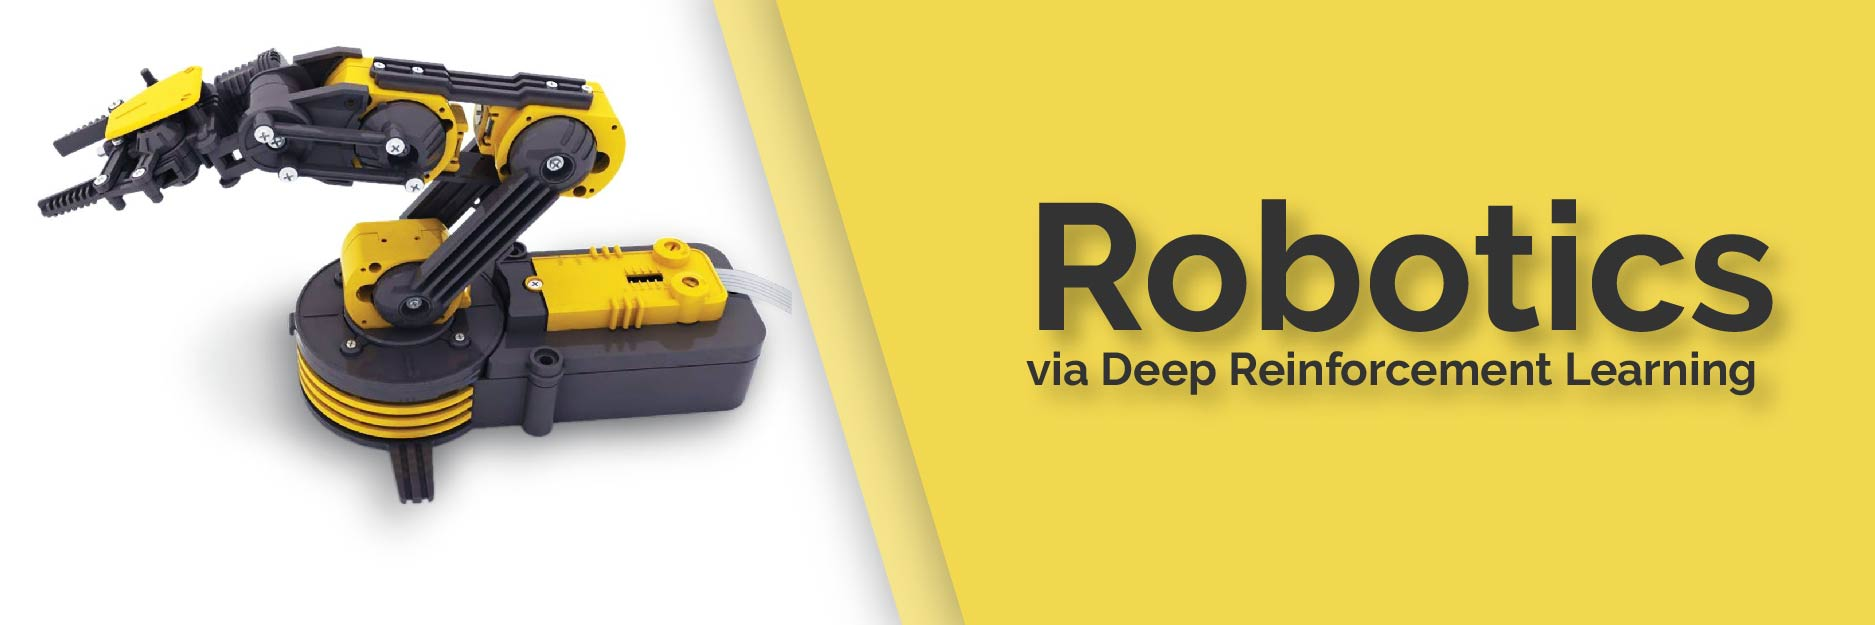 Renforce Learning Robotics Using Deep Reinforcement Learning Training In Bangalore